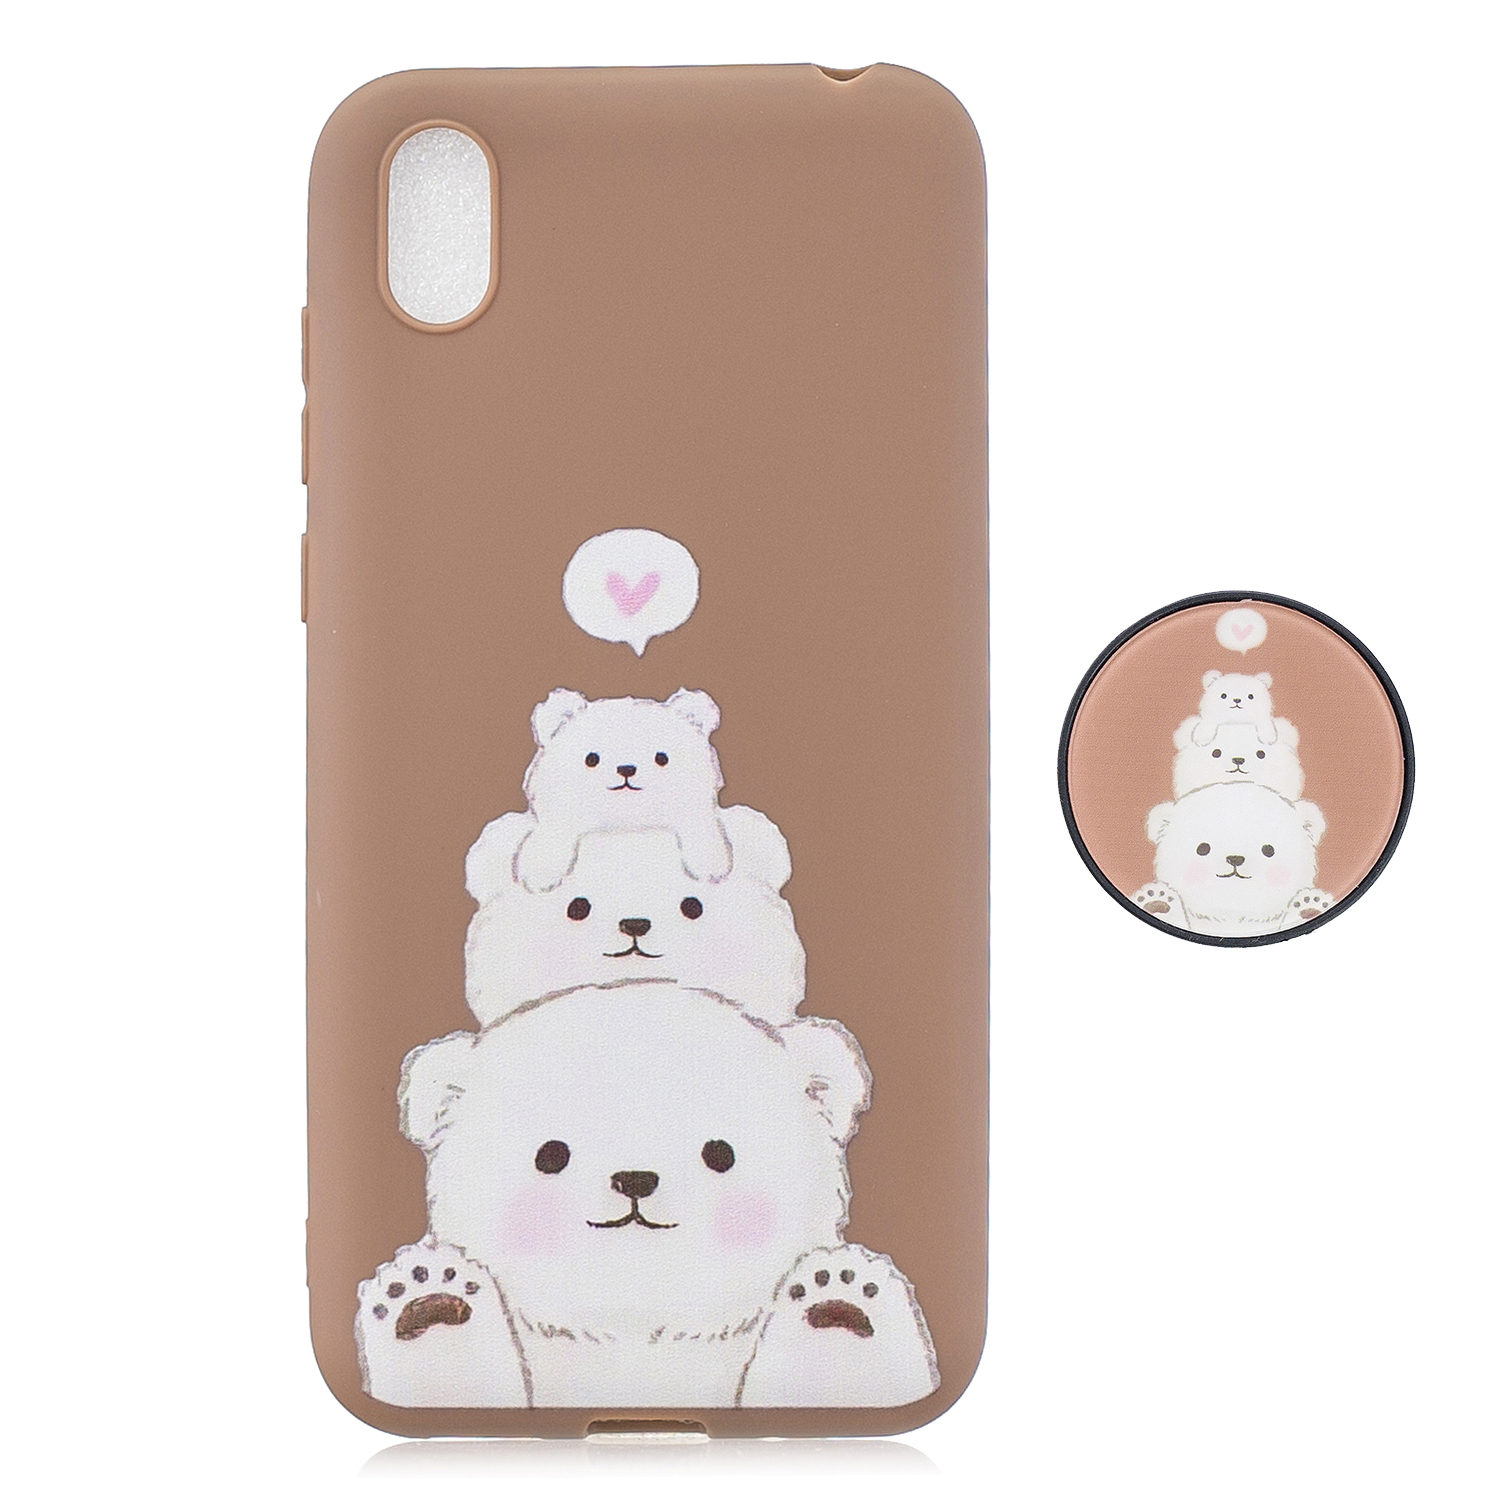 For HUAWEI Y5 2019  Lightweight Soft TPU Phone Case Pure Color Phone Cover Cute Cartoon Phone Case with Matching Pattern Adjustable Bracket 3